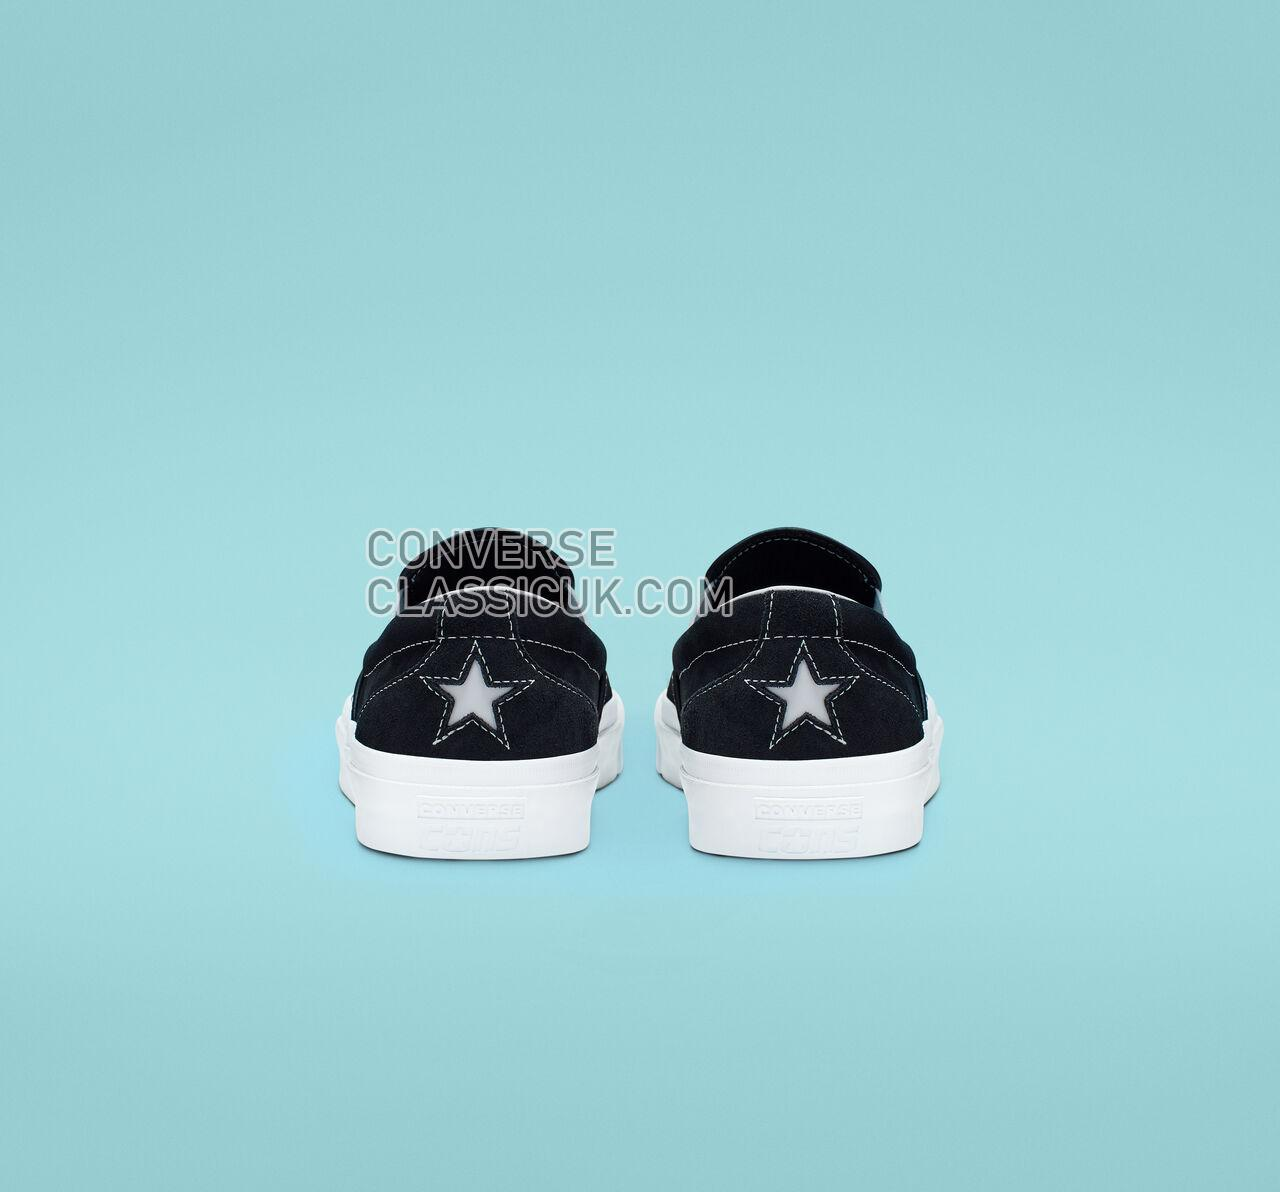 Converse One Star CC Pro Suede Slip Mens Womens Unisex 160545C Black/White/White Shoes